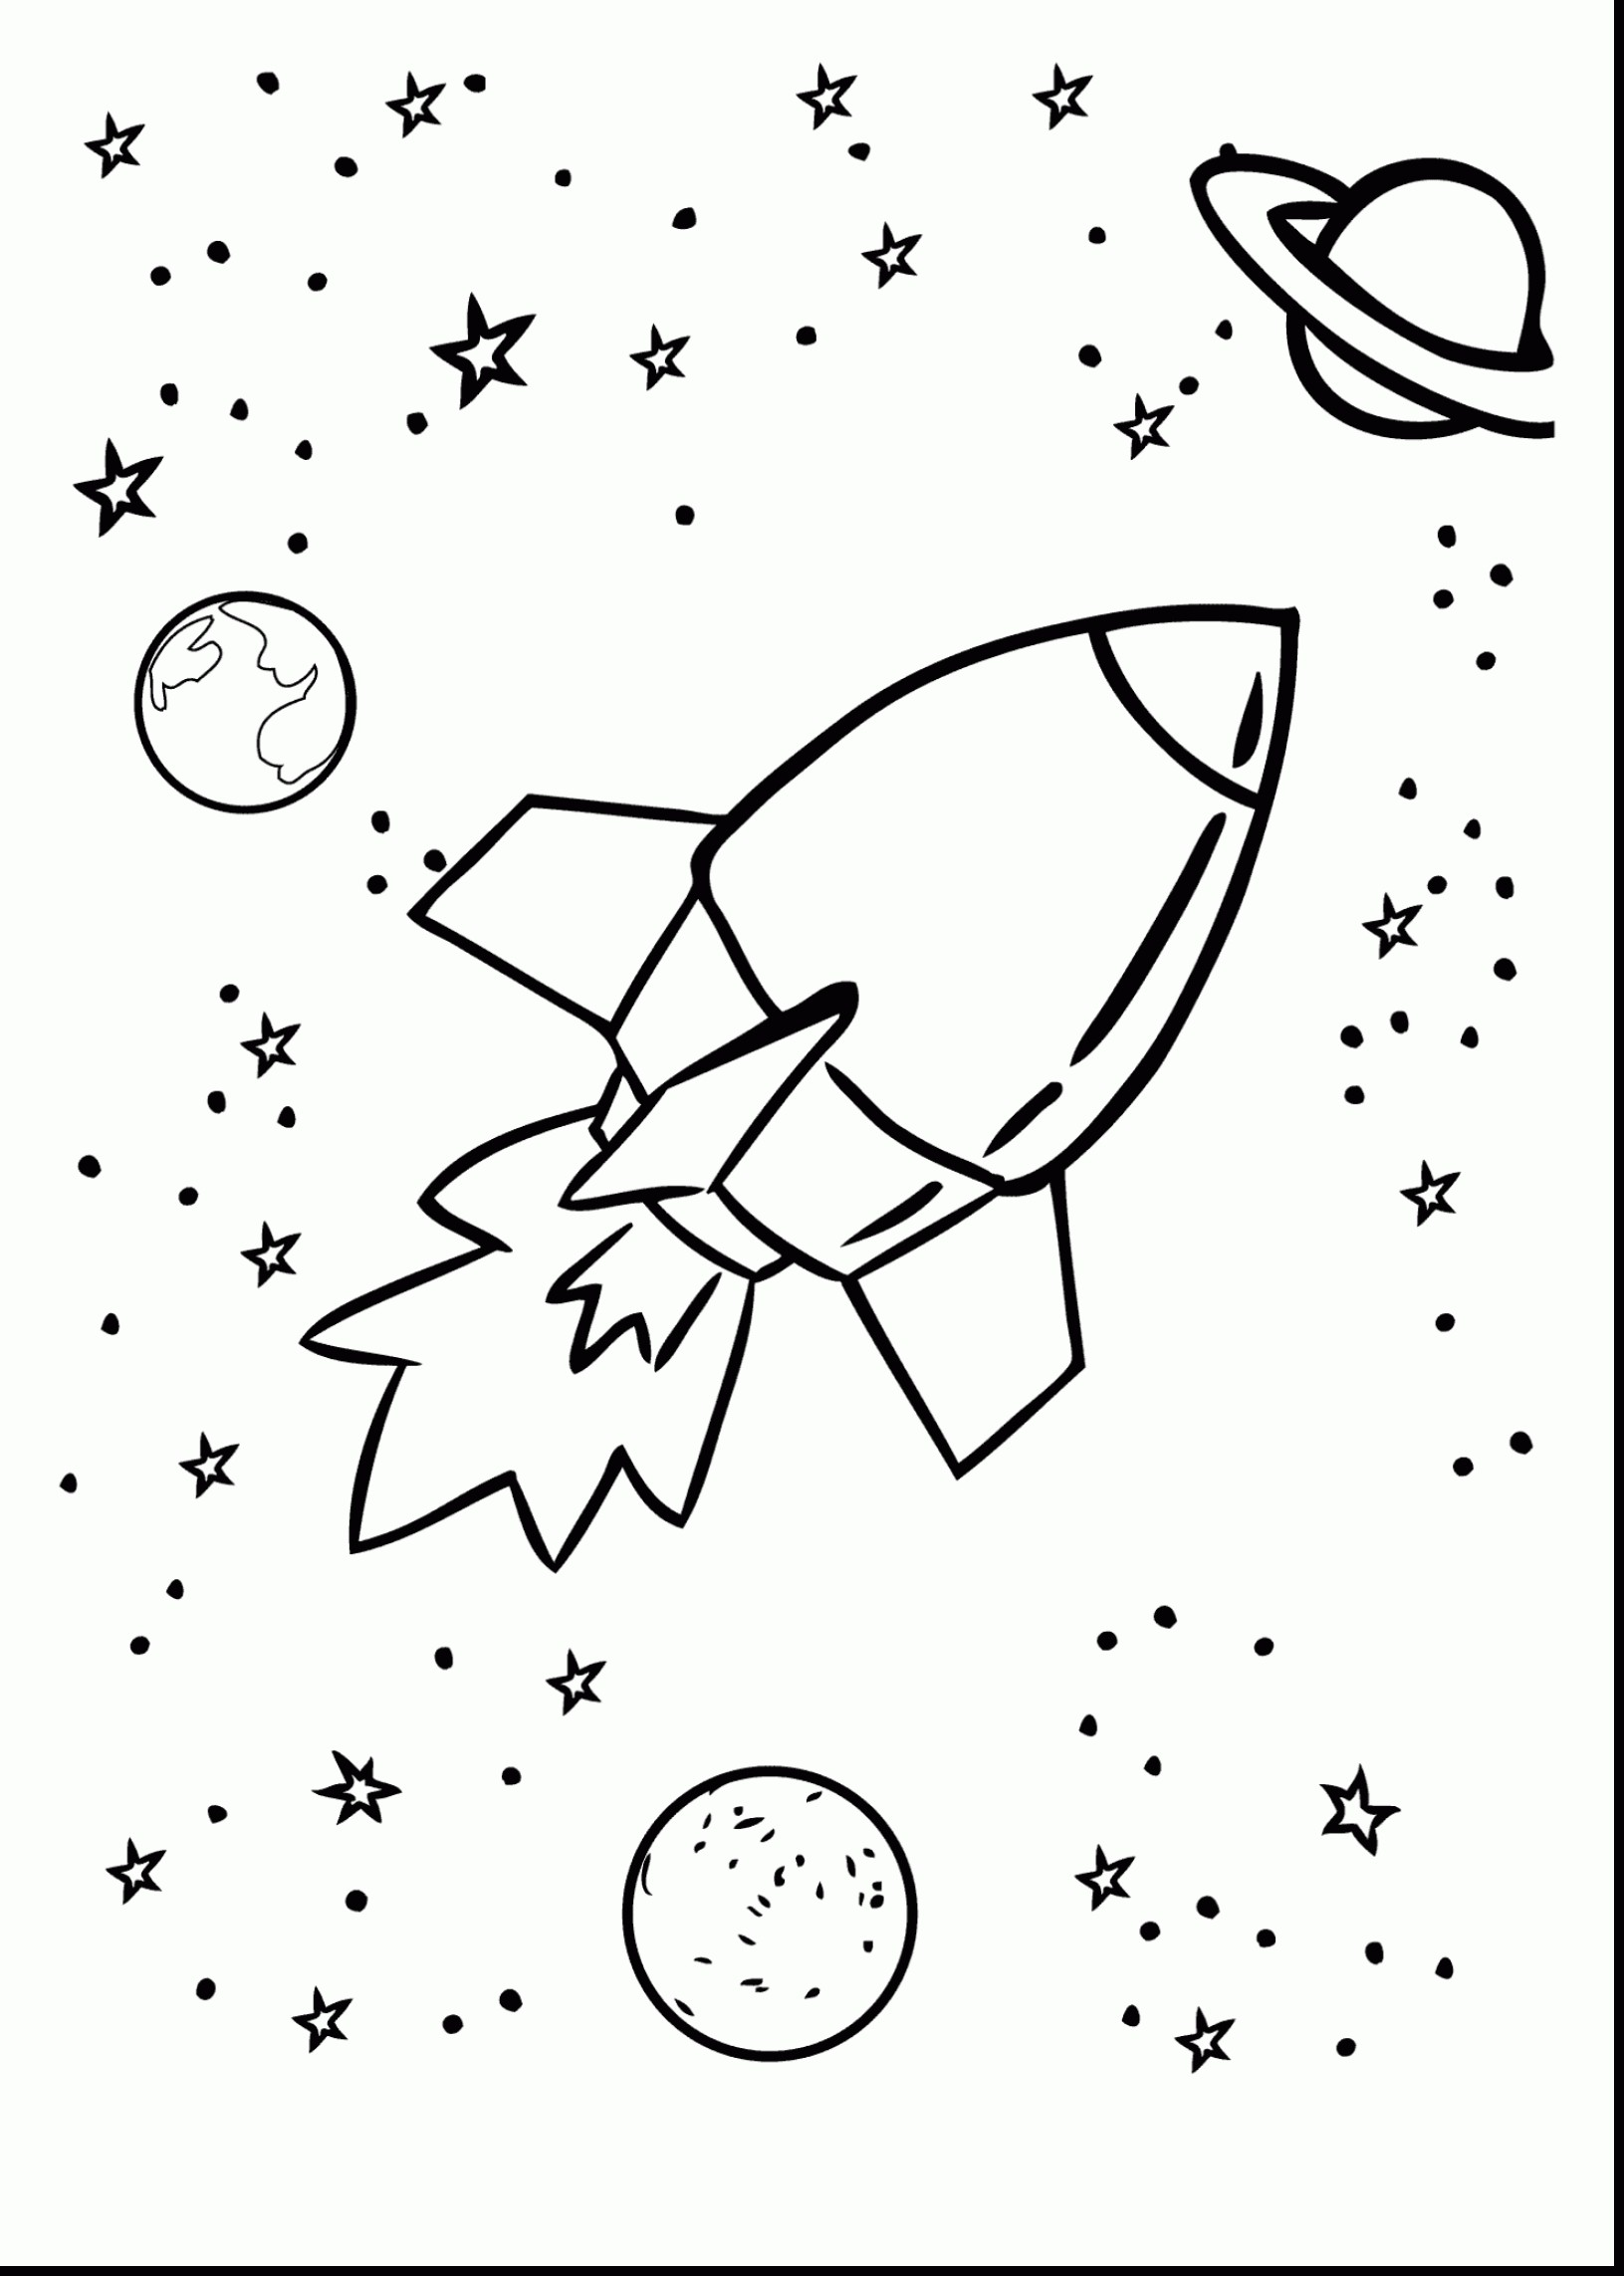 Solar System Coloring Pages Kindergarten At Getcolorings